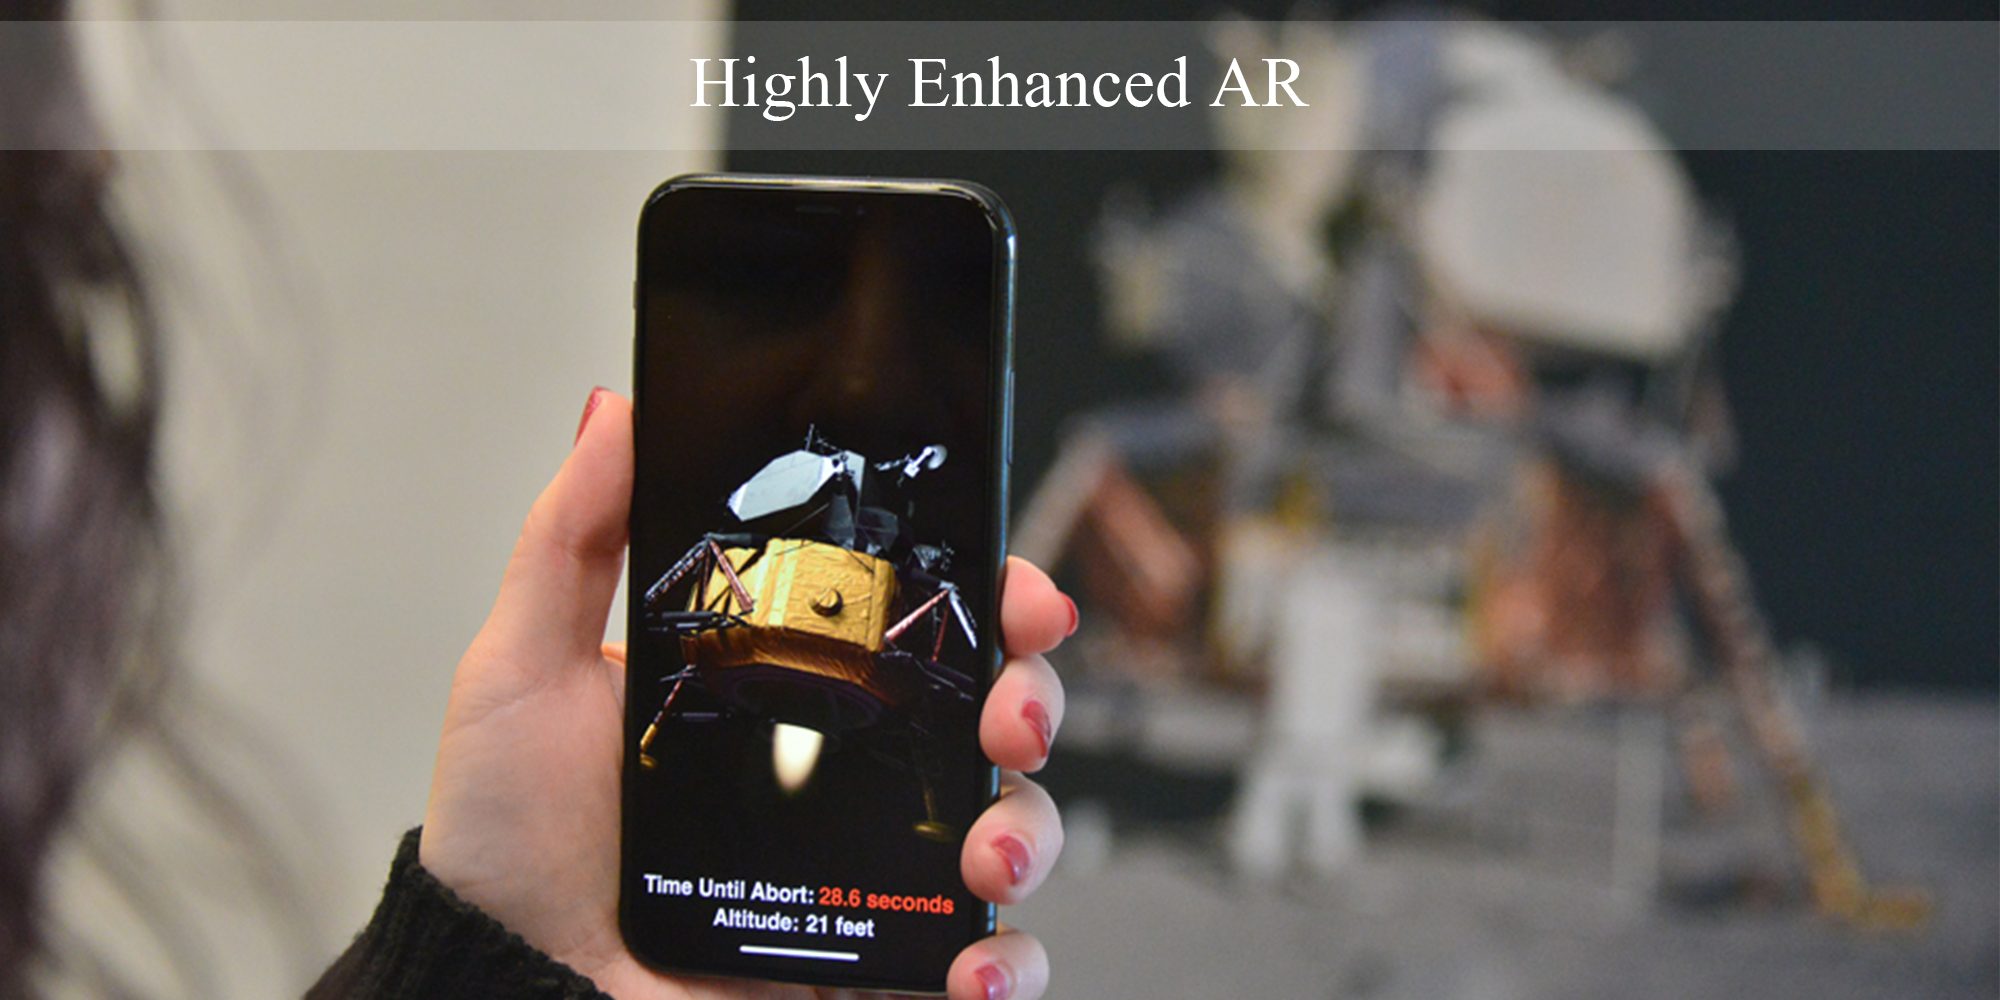 Highly Enhanced AR